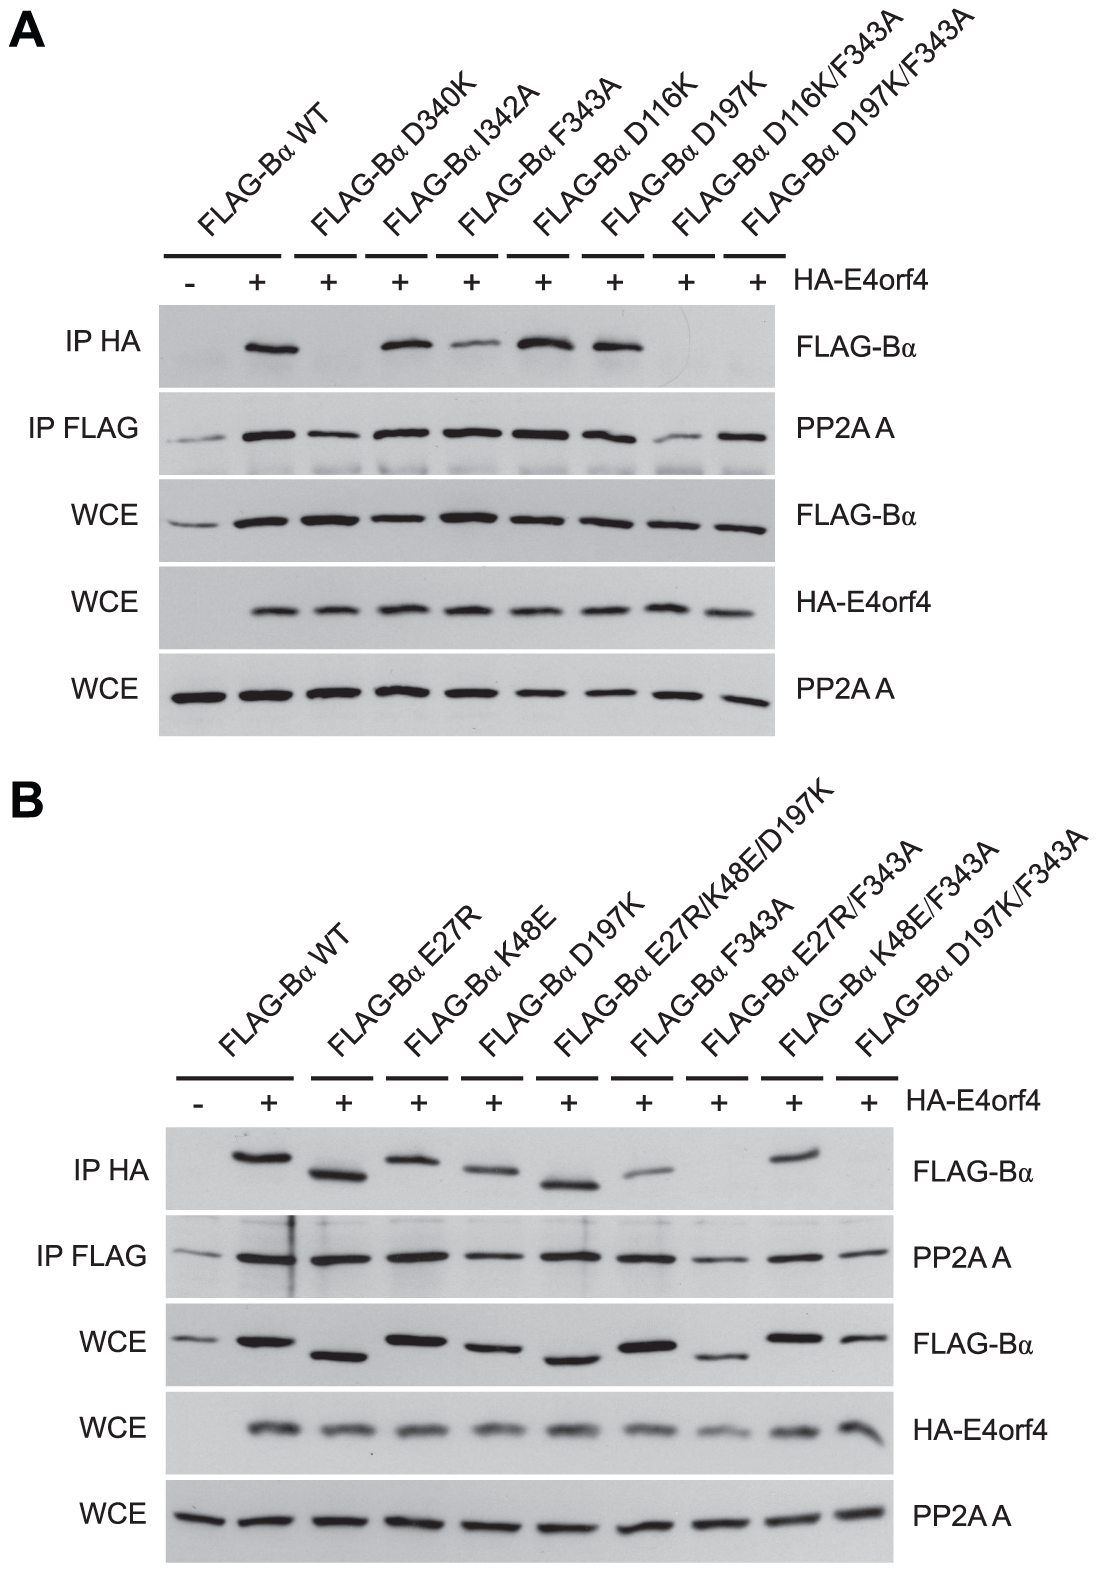 B55α residues involved in Tau dephosphorylation and E4orf4 binding.